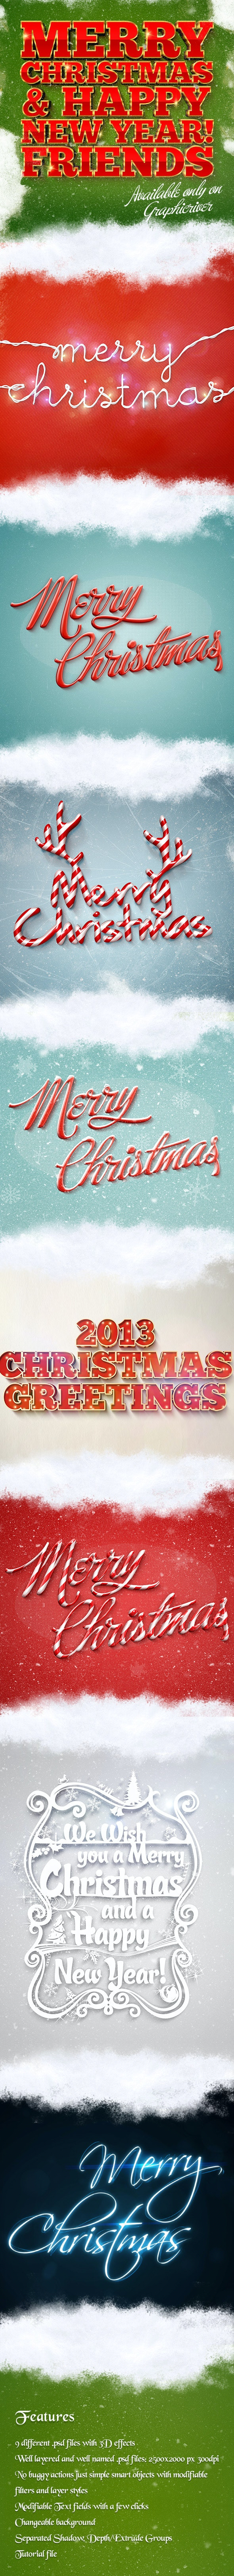 Holiday Christmas 3D Text Effects Pack for Photoshop - Photoshop Add-ons